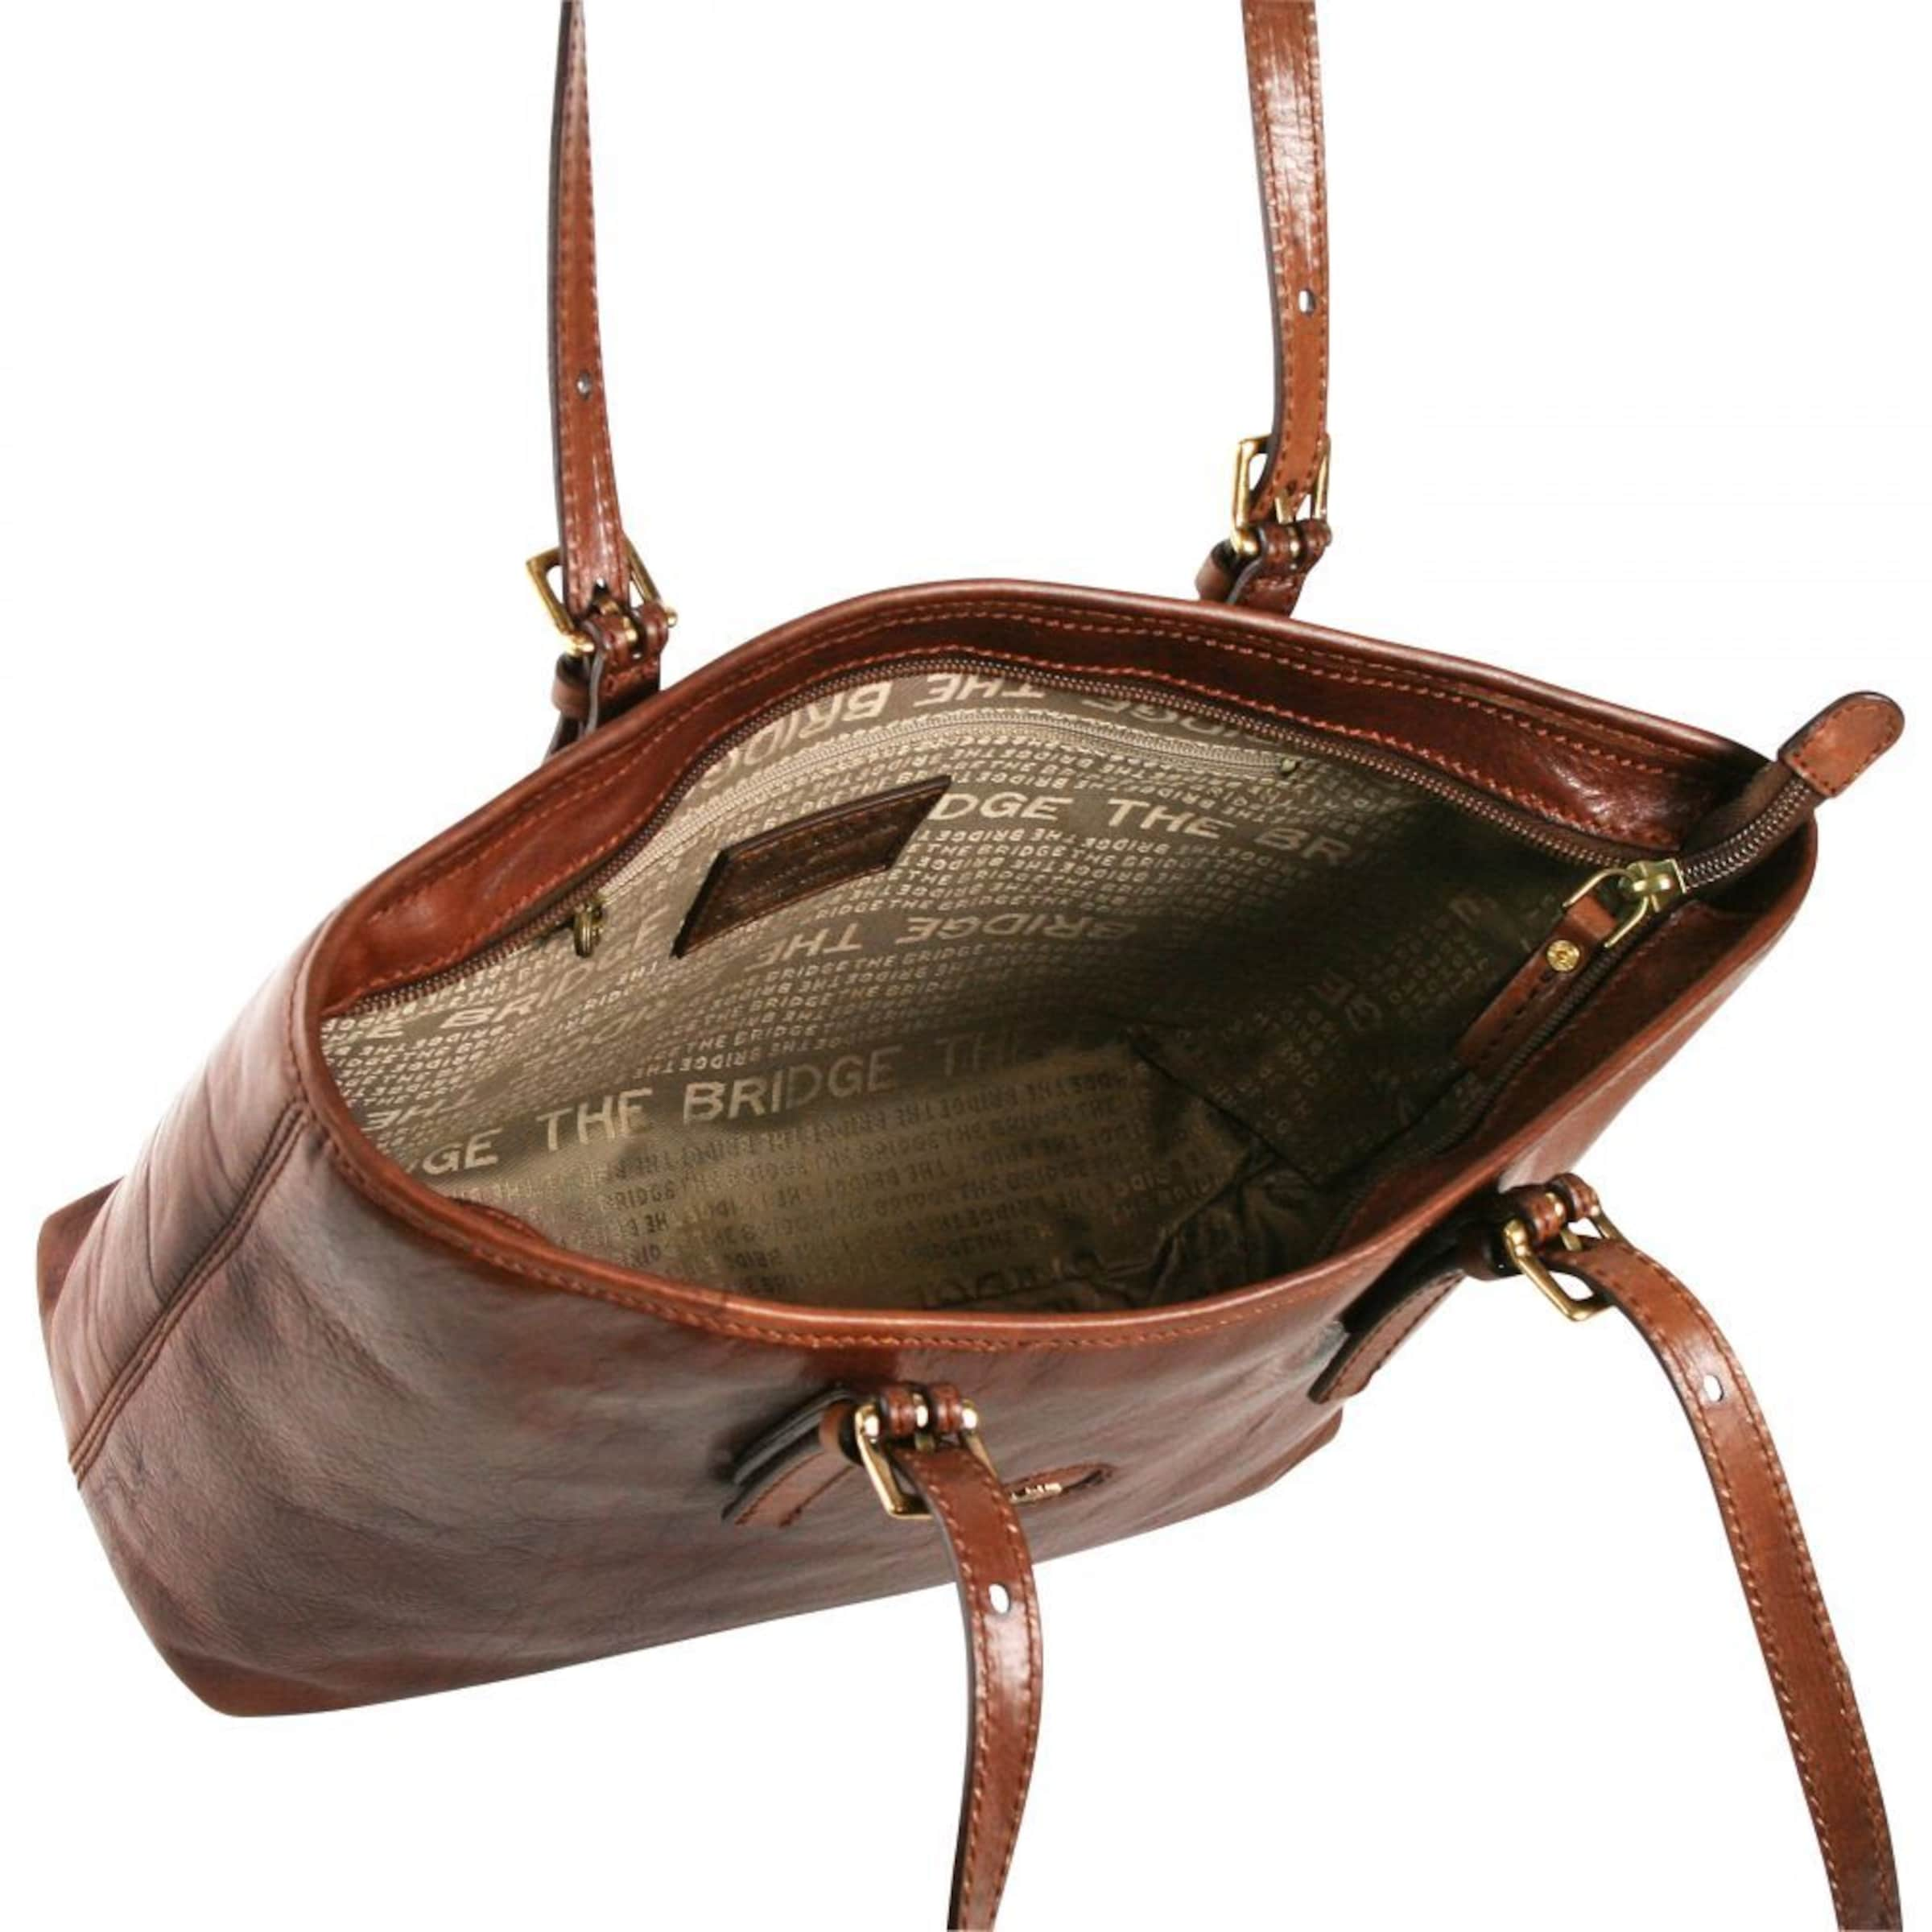 Sepia Donna Umhängetasche In Bridge Leder 30 Cm The Story Shopper X0nOwPN8k